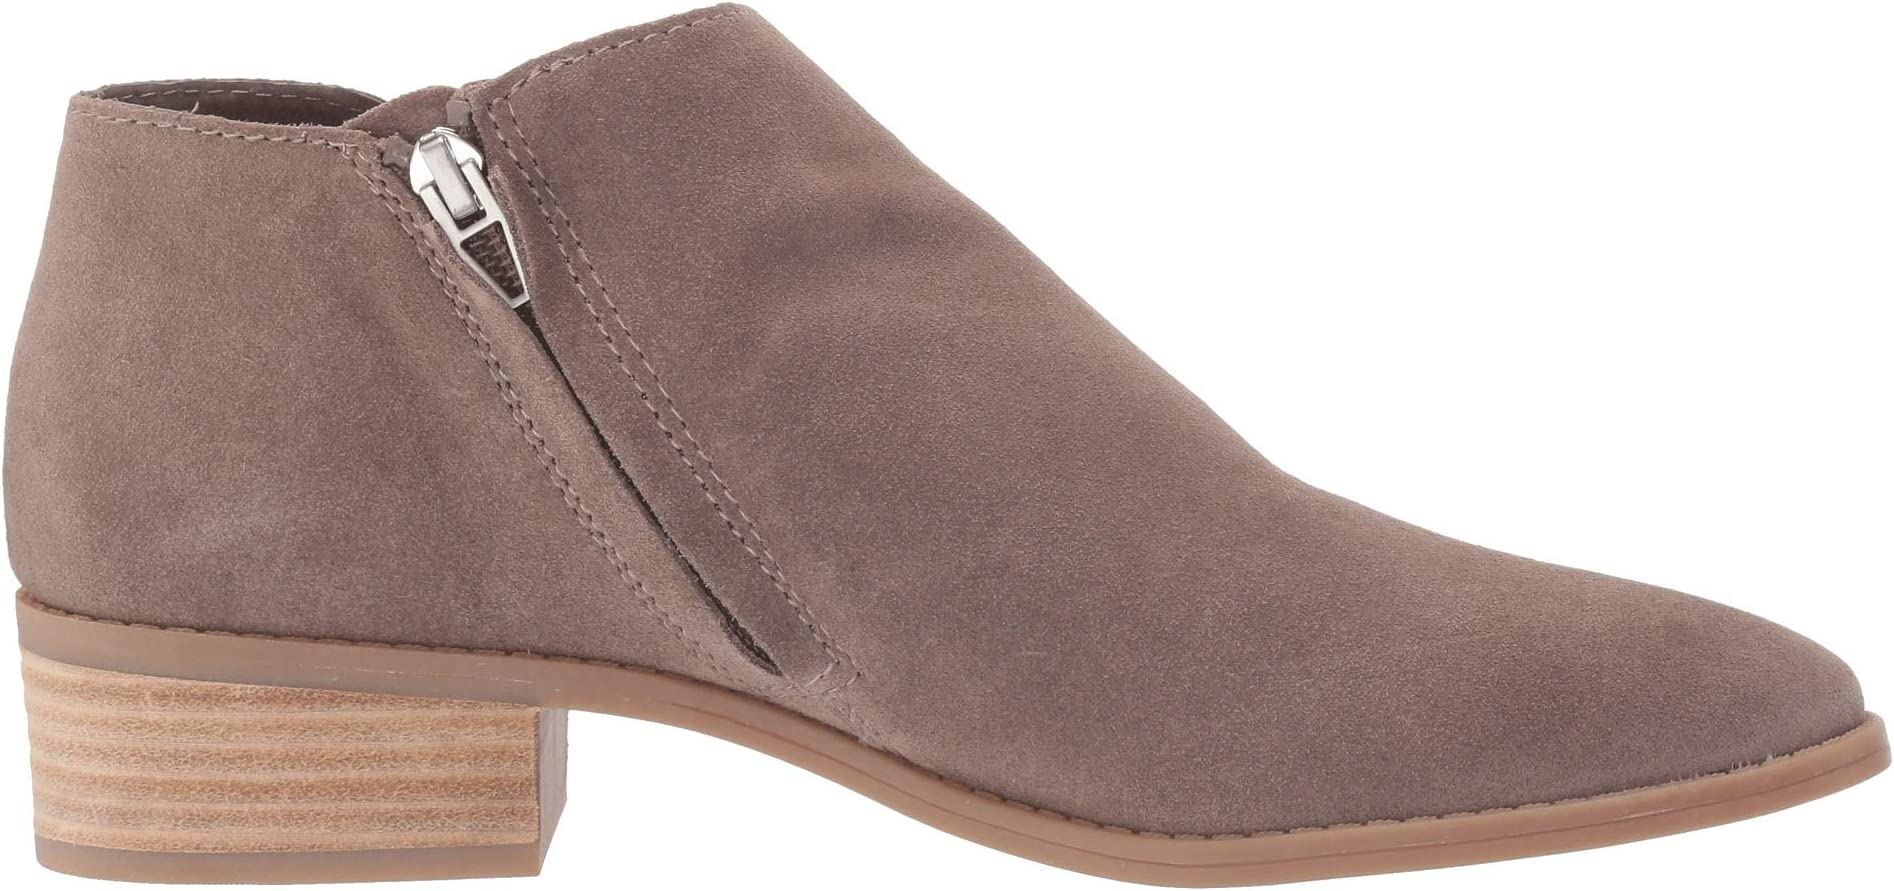 Dolce Vita Tibby   Women's shoes   2020 Newest